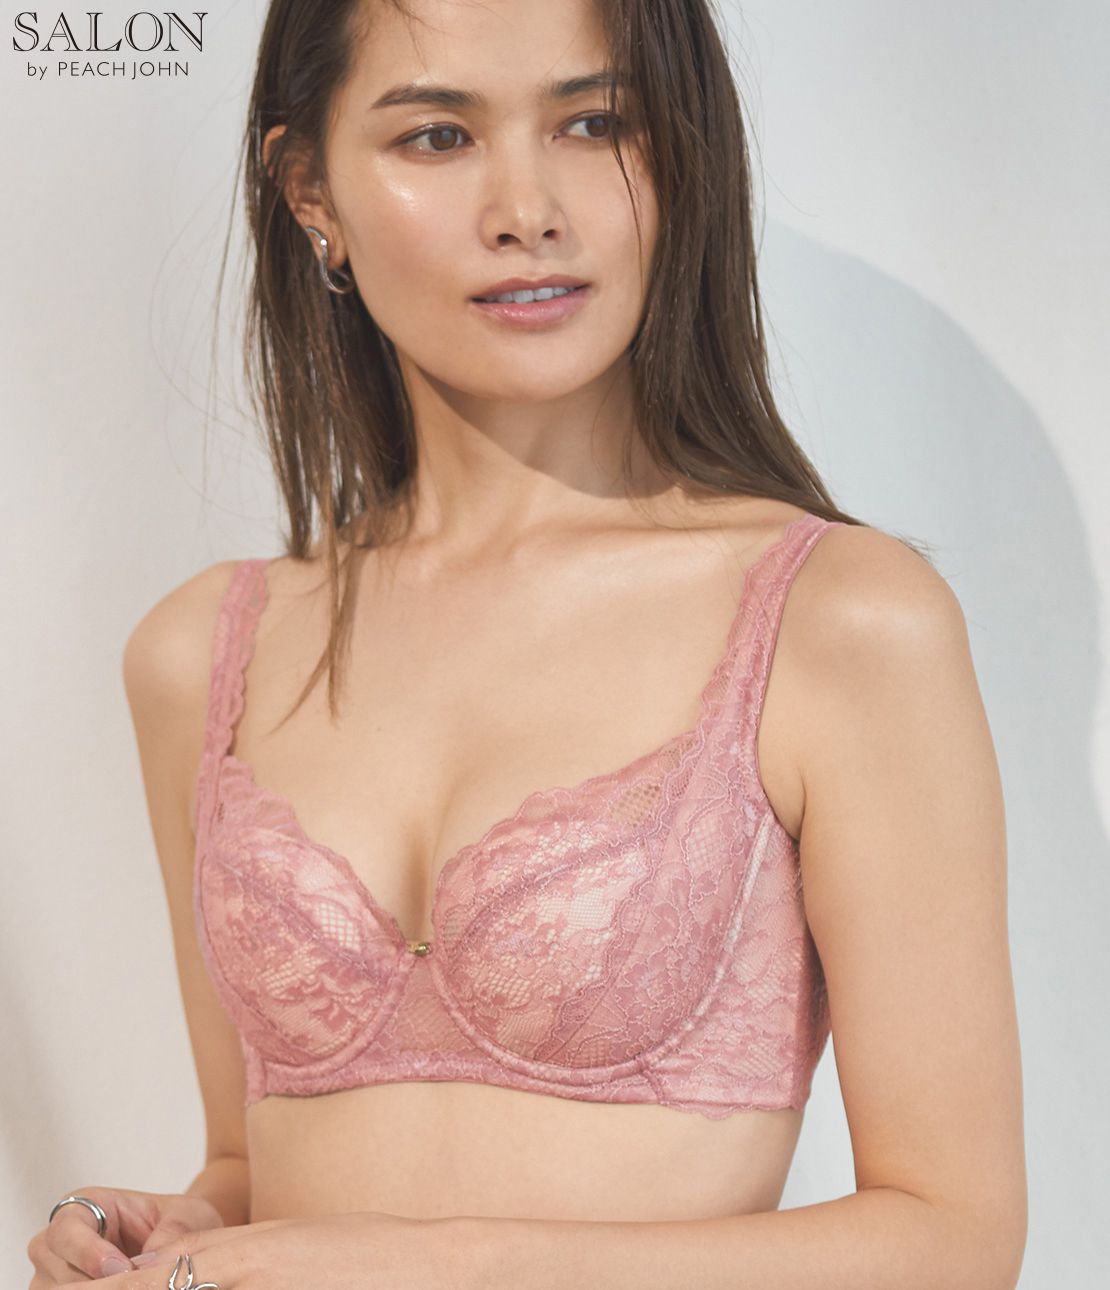 Salon style make-up bra